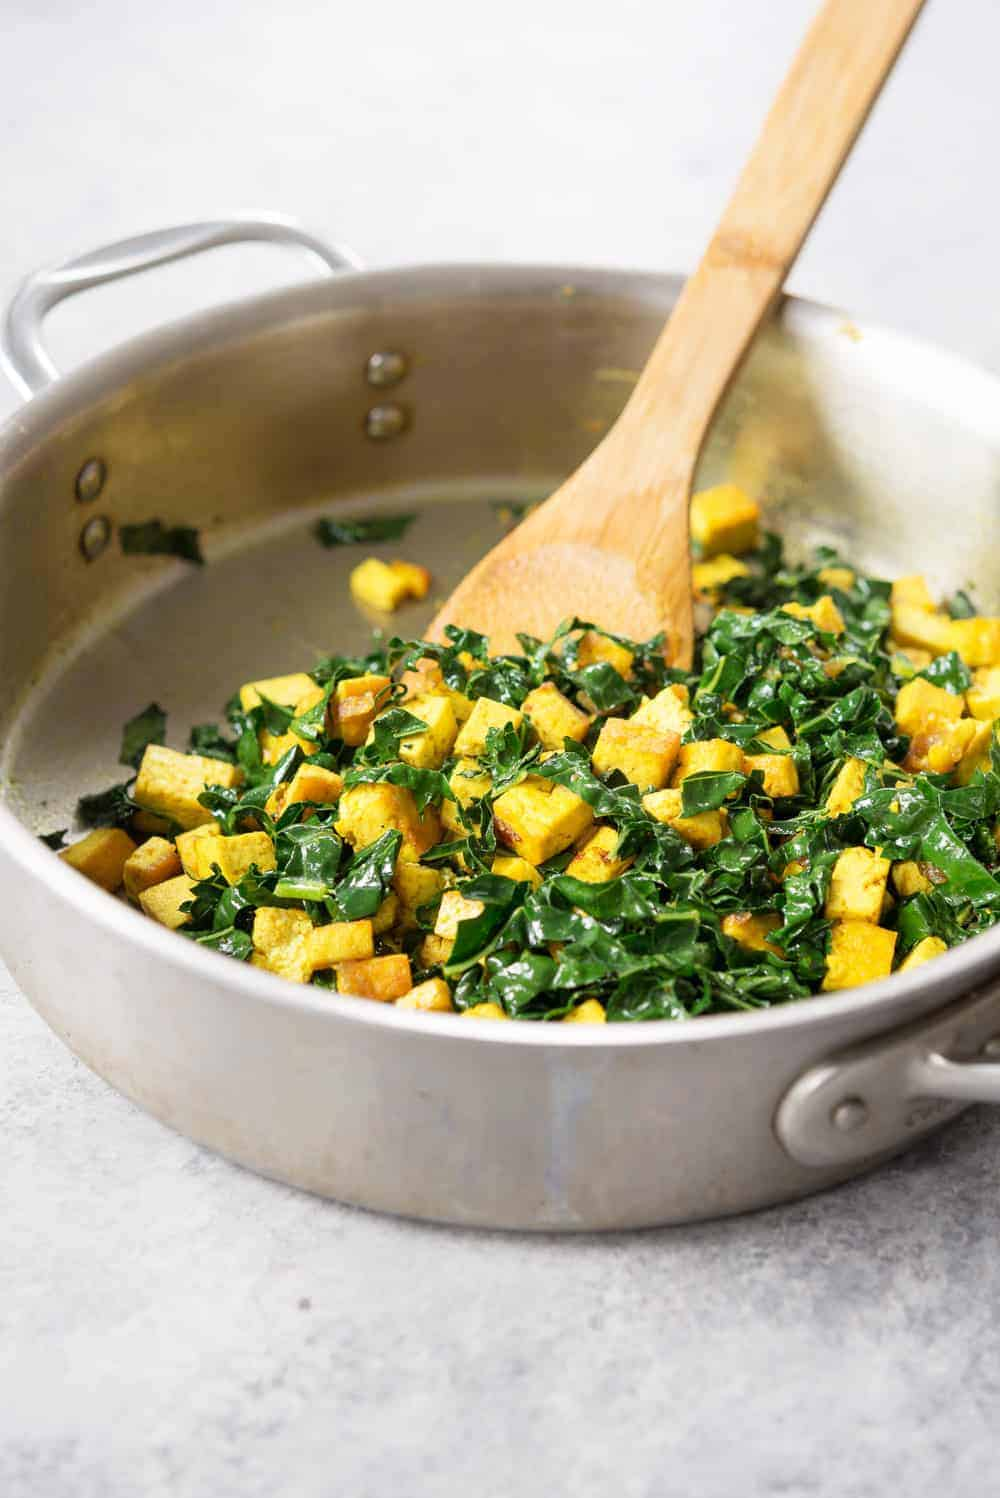 kale and tofu in a skillet